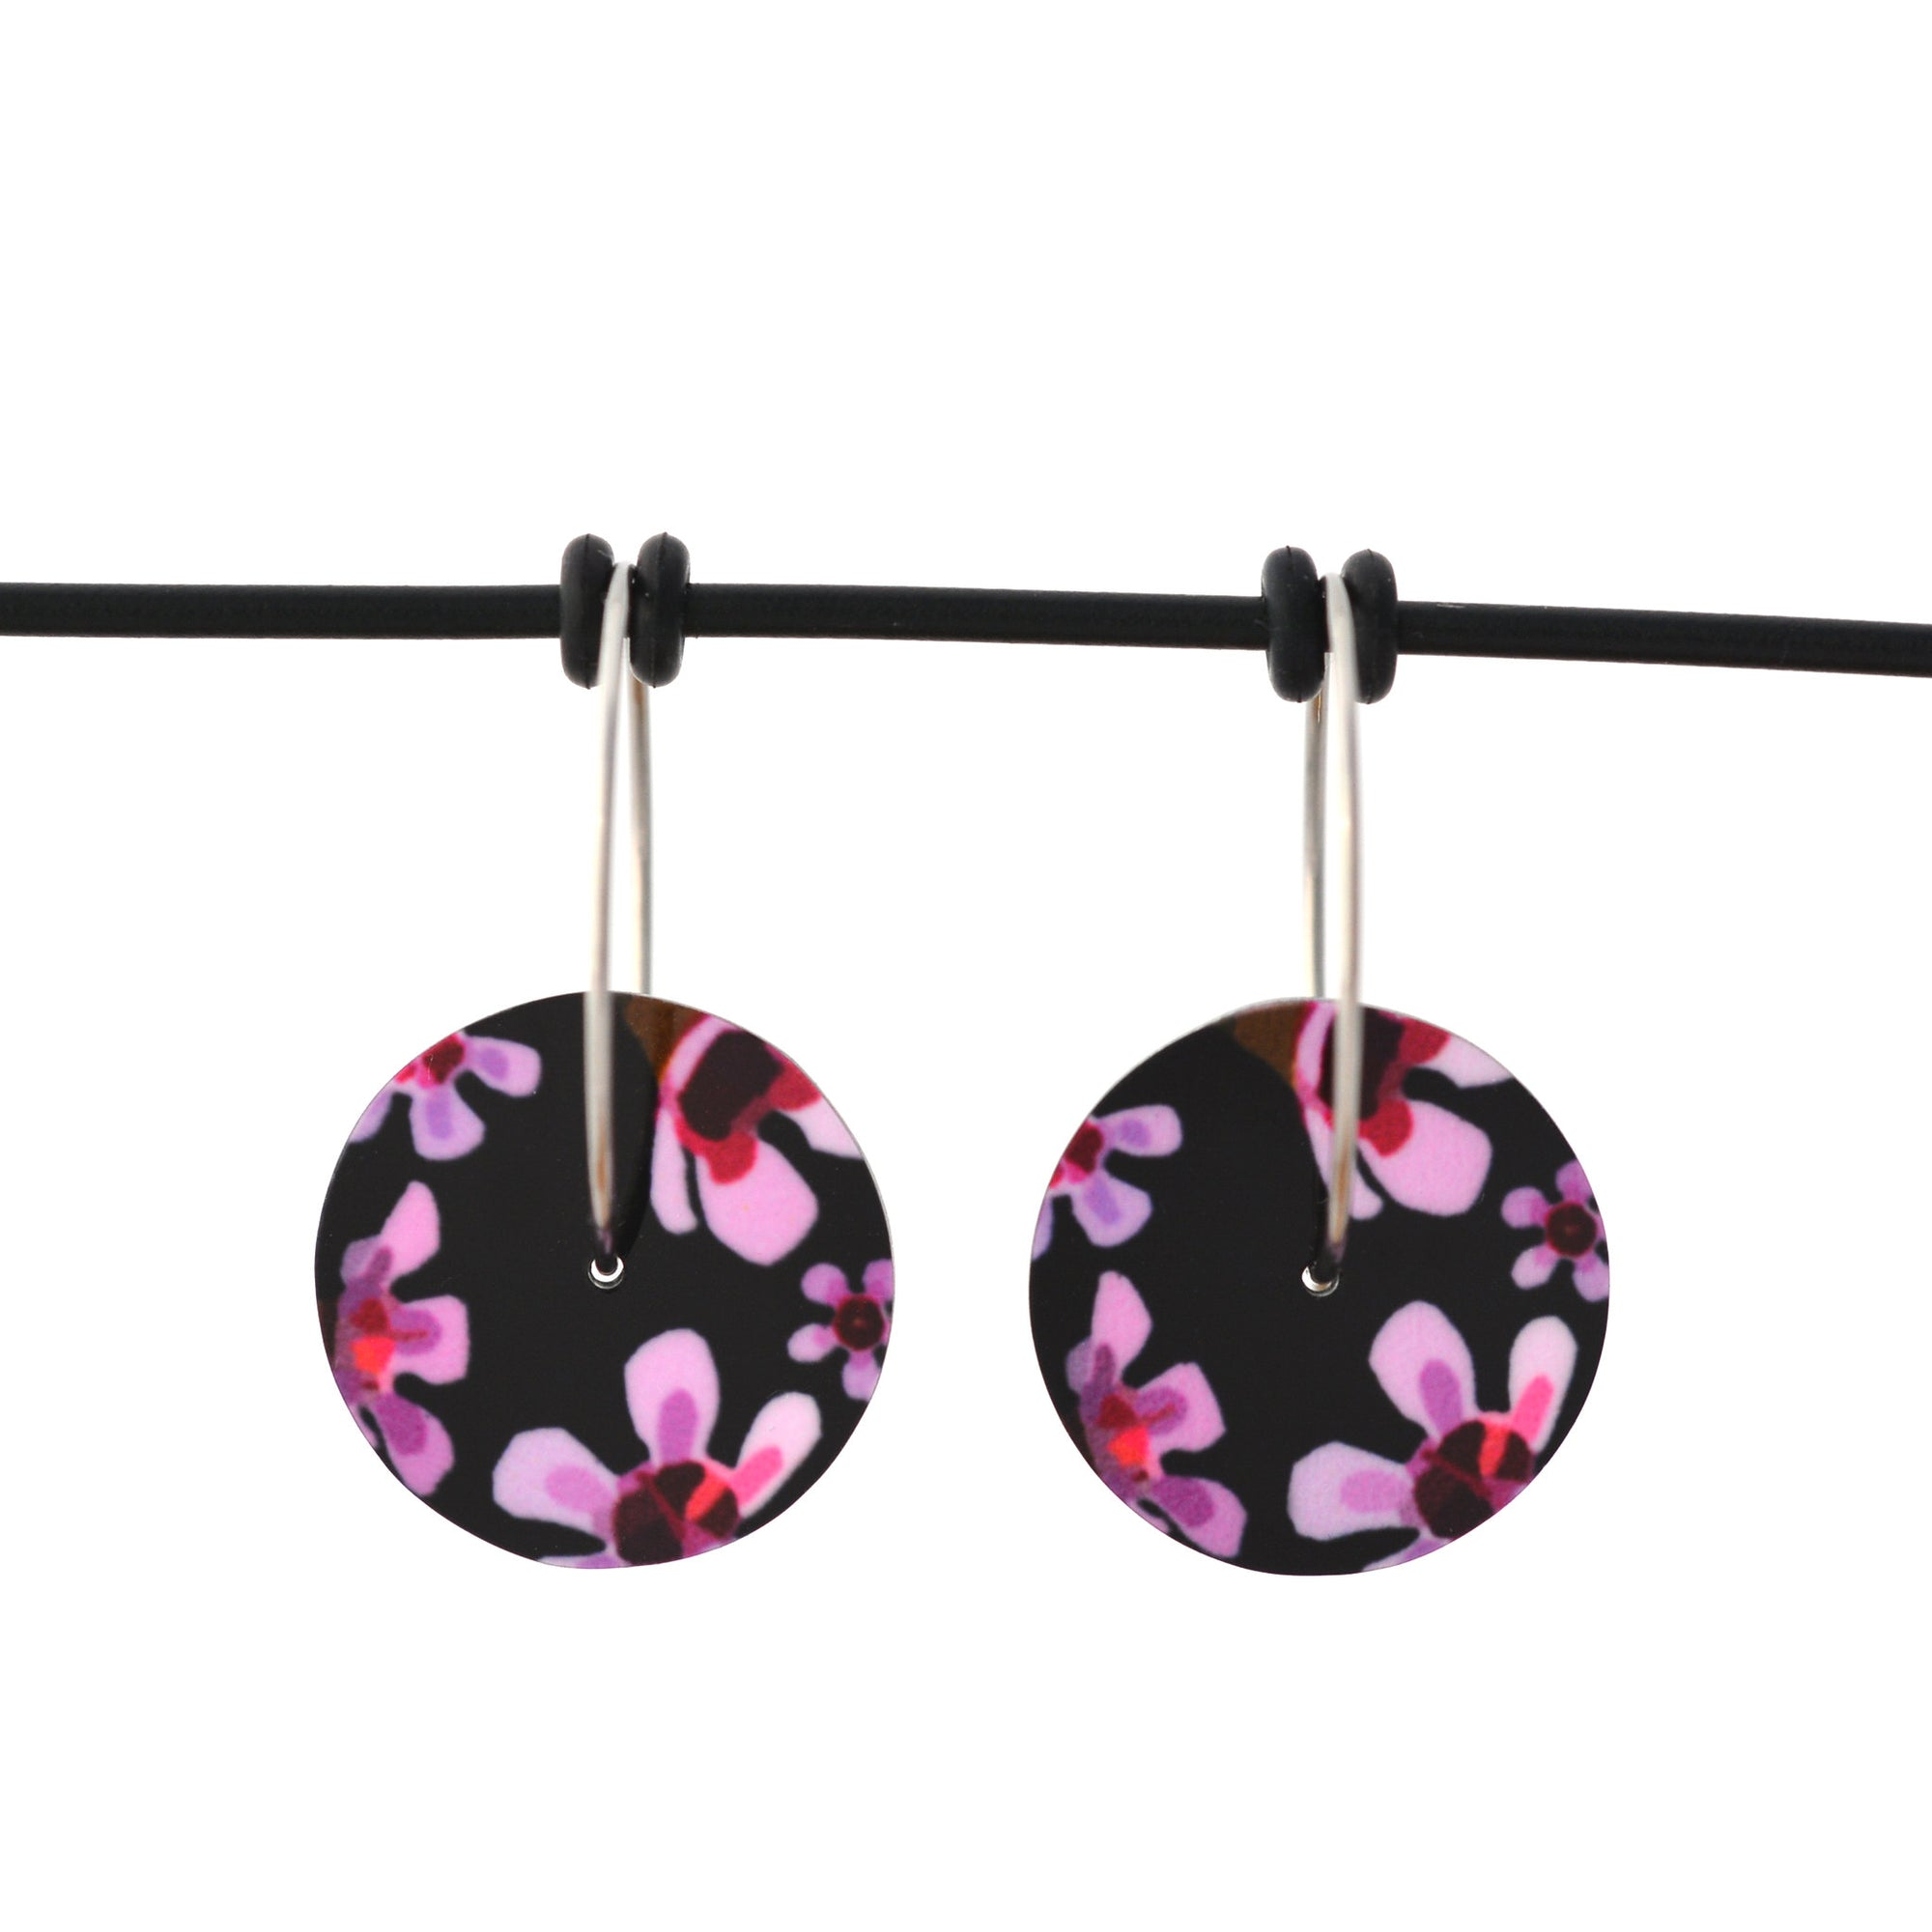 Circle earrings featuring pink Geraldton Wax flowers on a black background. The aluminium earrings discs are approximately 16mm in diameter and the surgical stainless steel hoop attachments are 20mm in diameter.